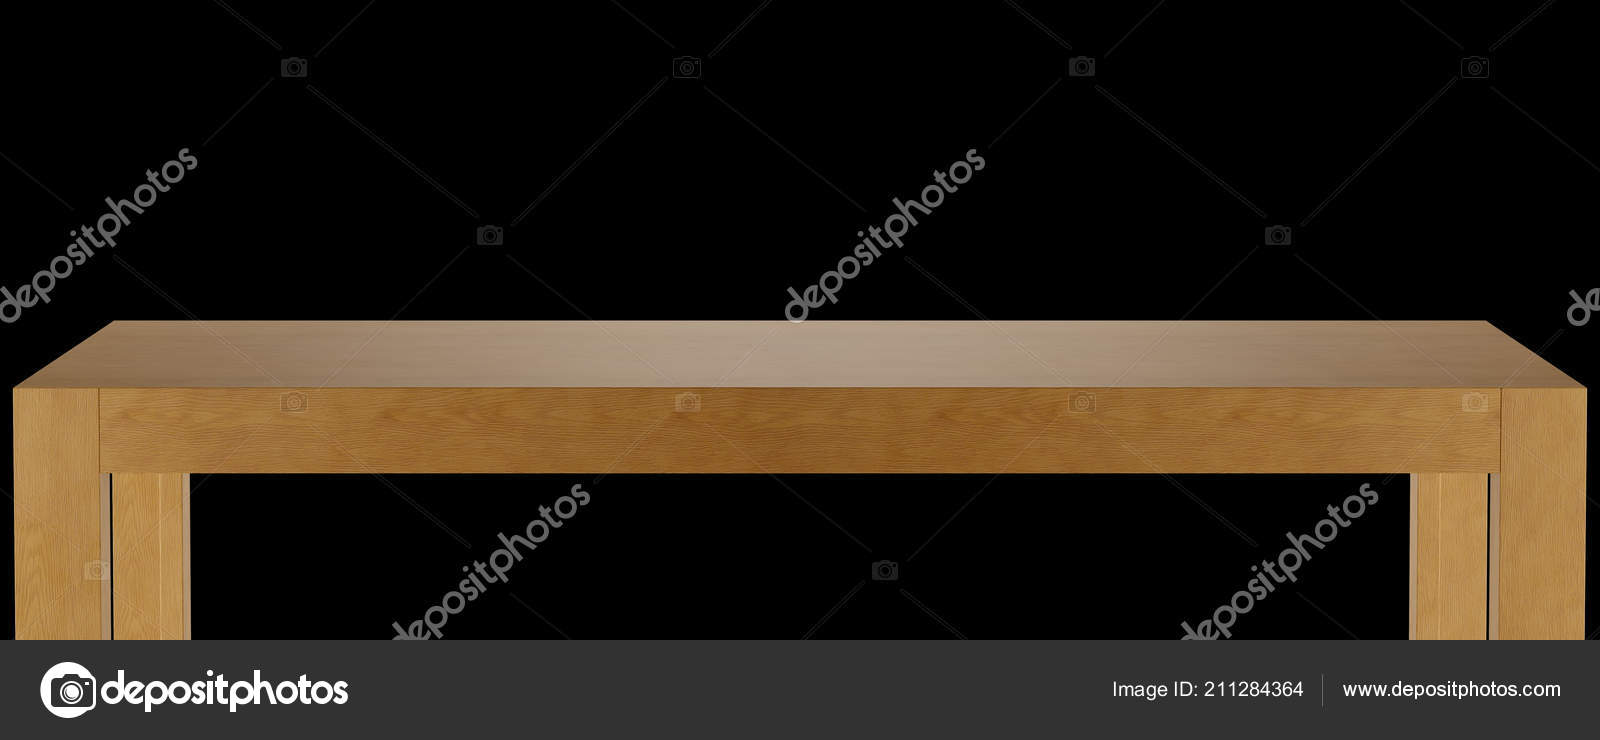 Wooden Table Top Template Isolated Black Background Illustration